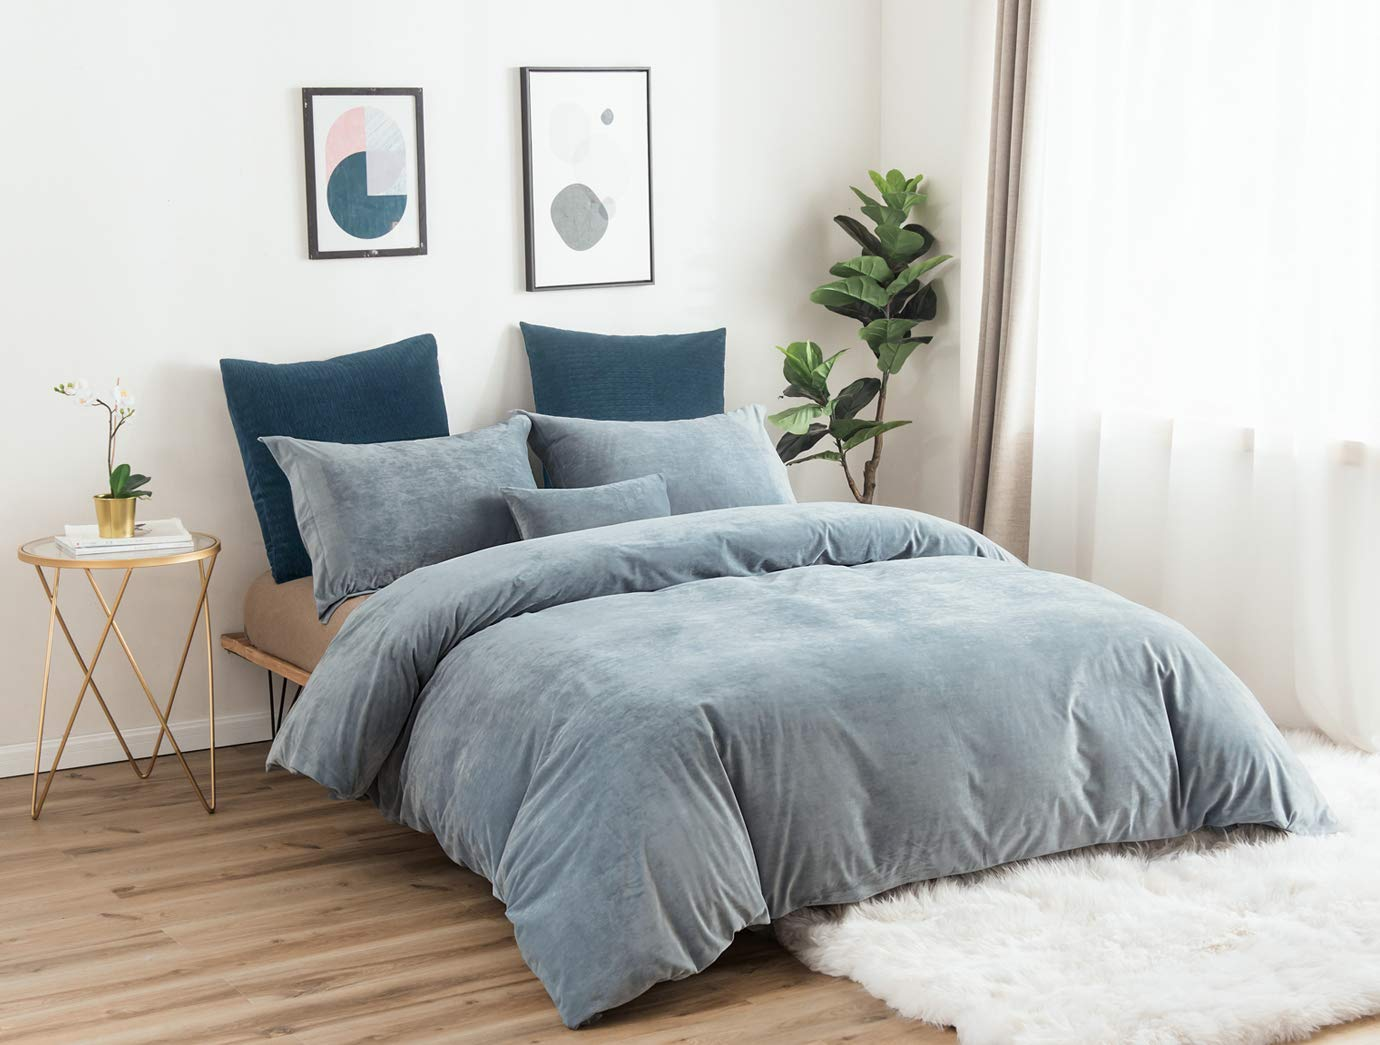 The Cool Decor Color That s Taking Over Homes In 2019